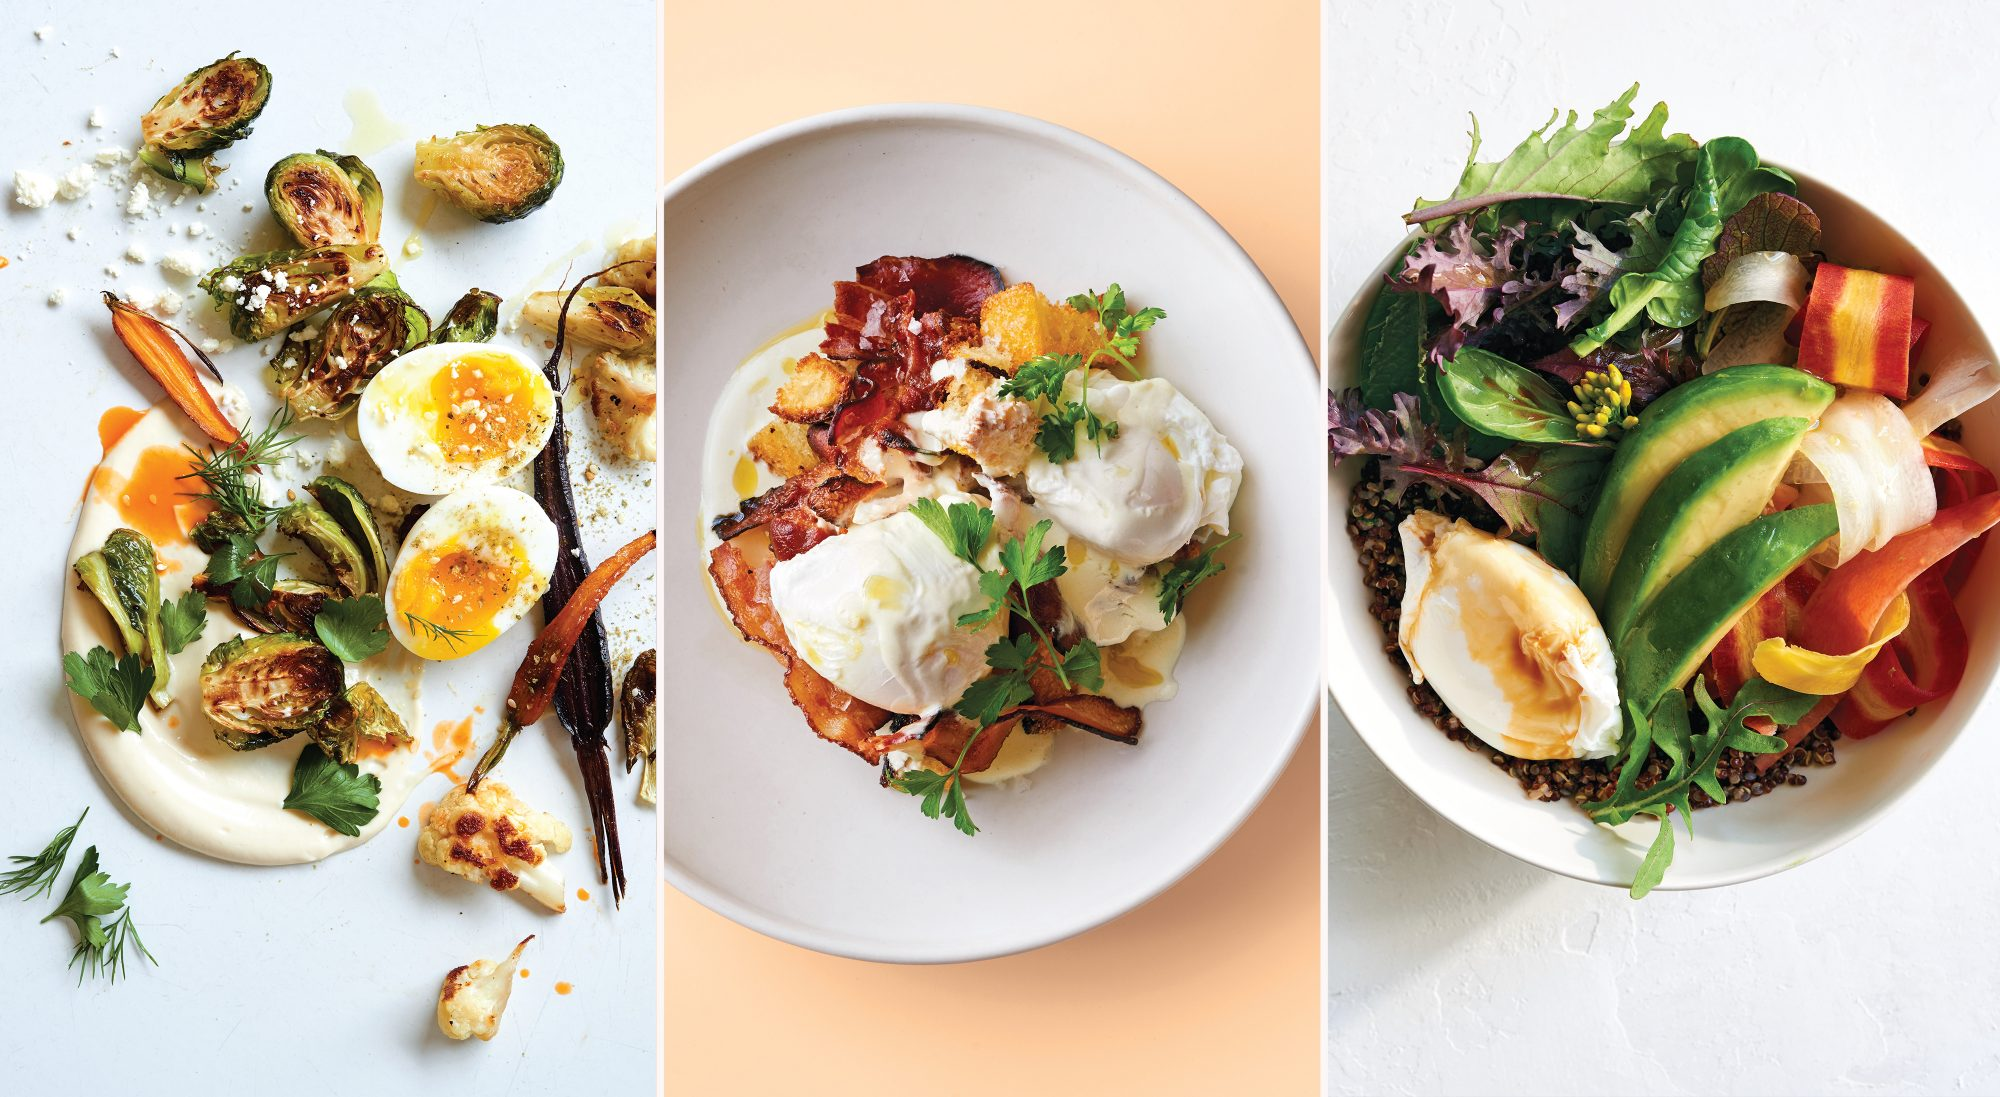 These 3 Egg Bowls Make Delicious High-Protein Lunches